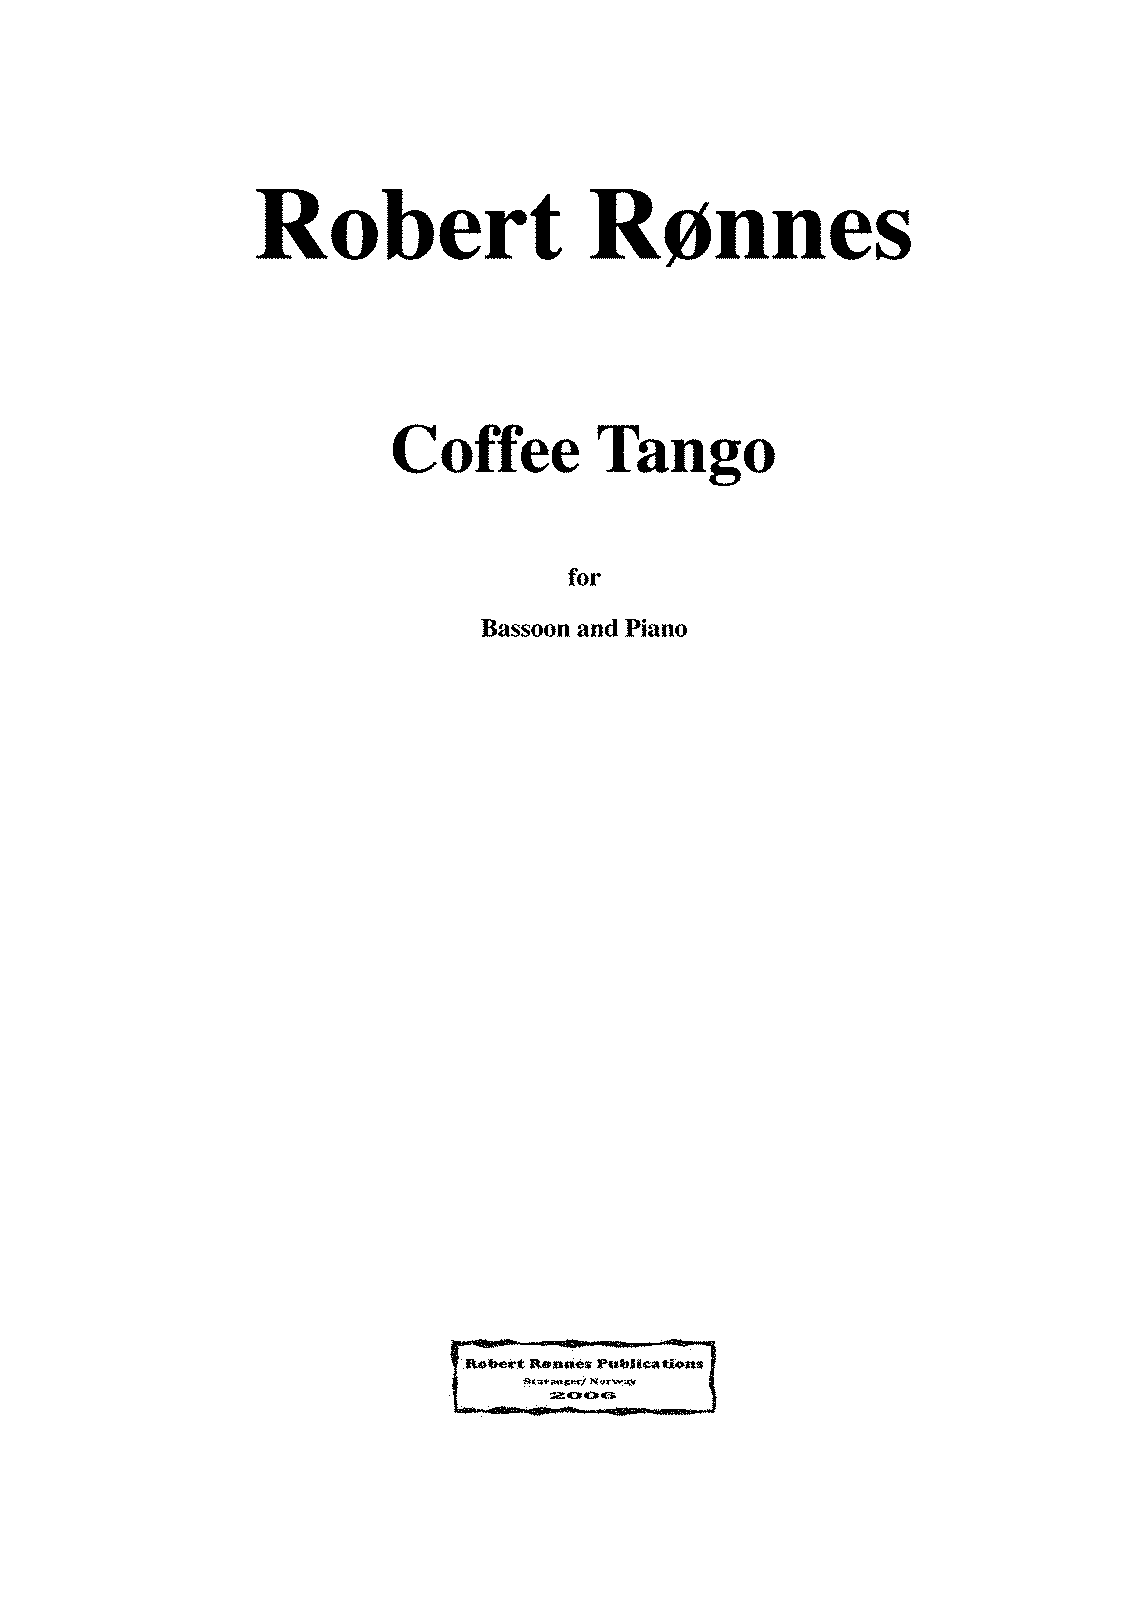 PMLP176408-Robert Rønnes Coffeetango for Bassoon and Piano.score.pdf